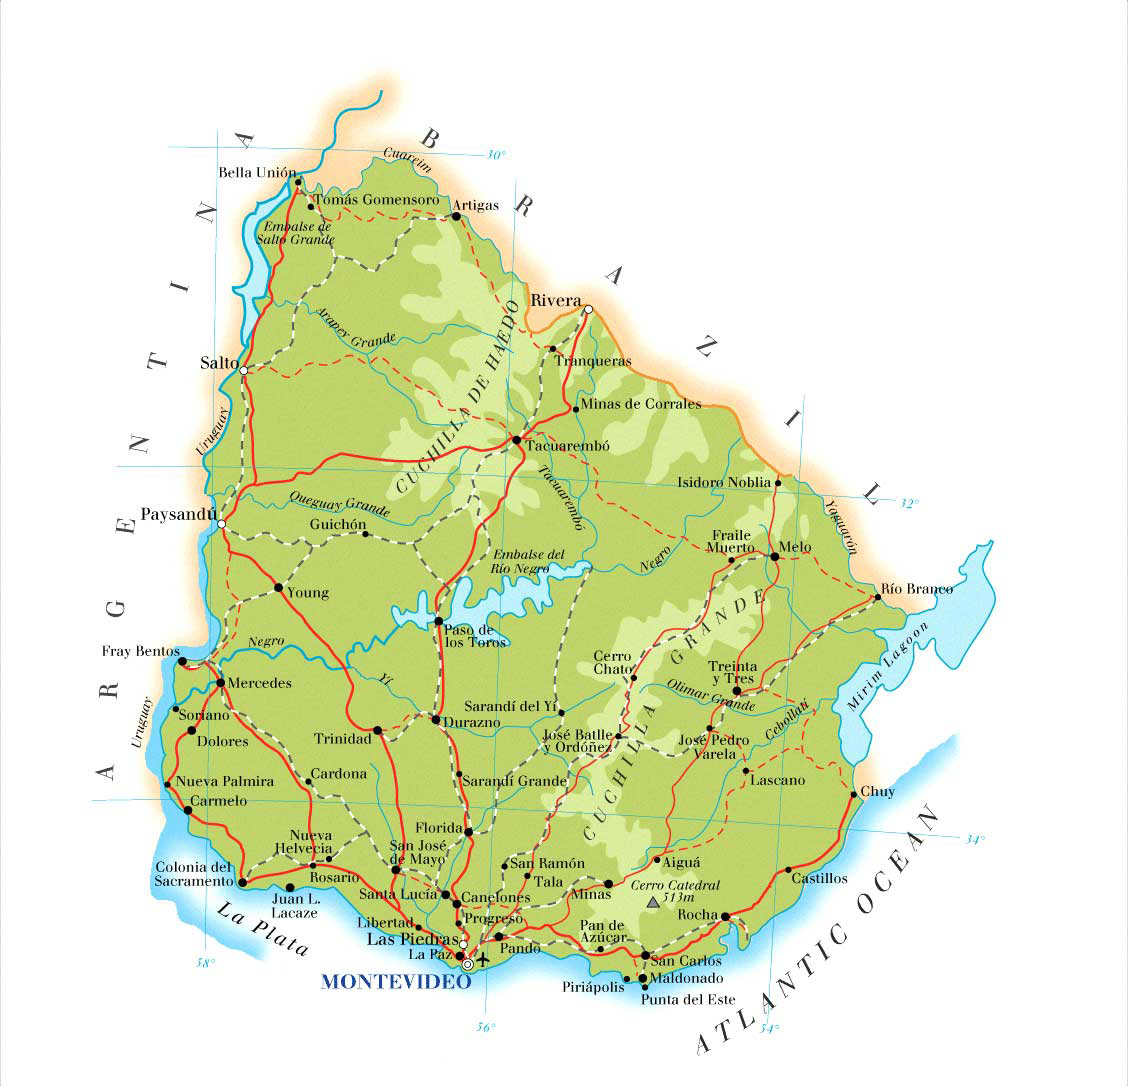 Detailed Physical Map Of Uruguay With Roads Uruguay Detailed - Uruguay physical map